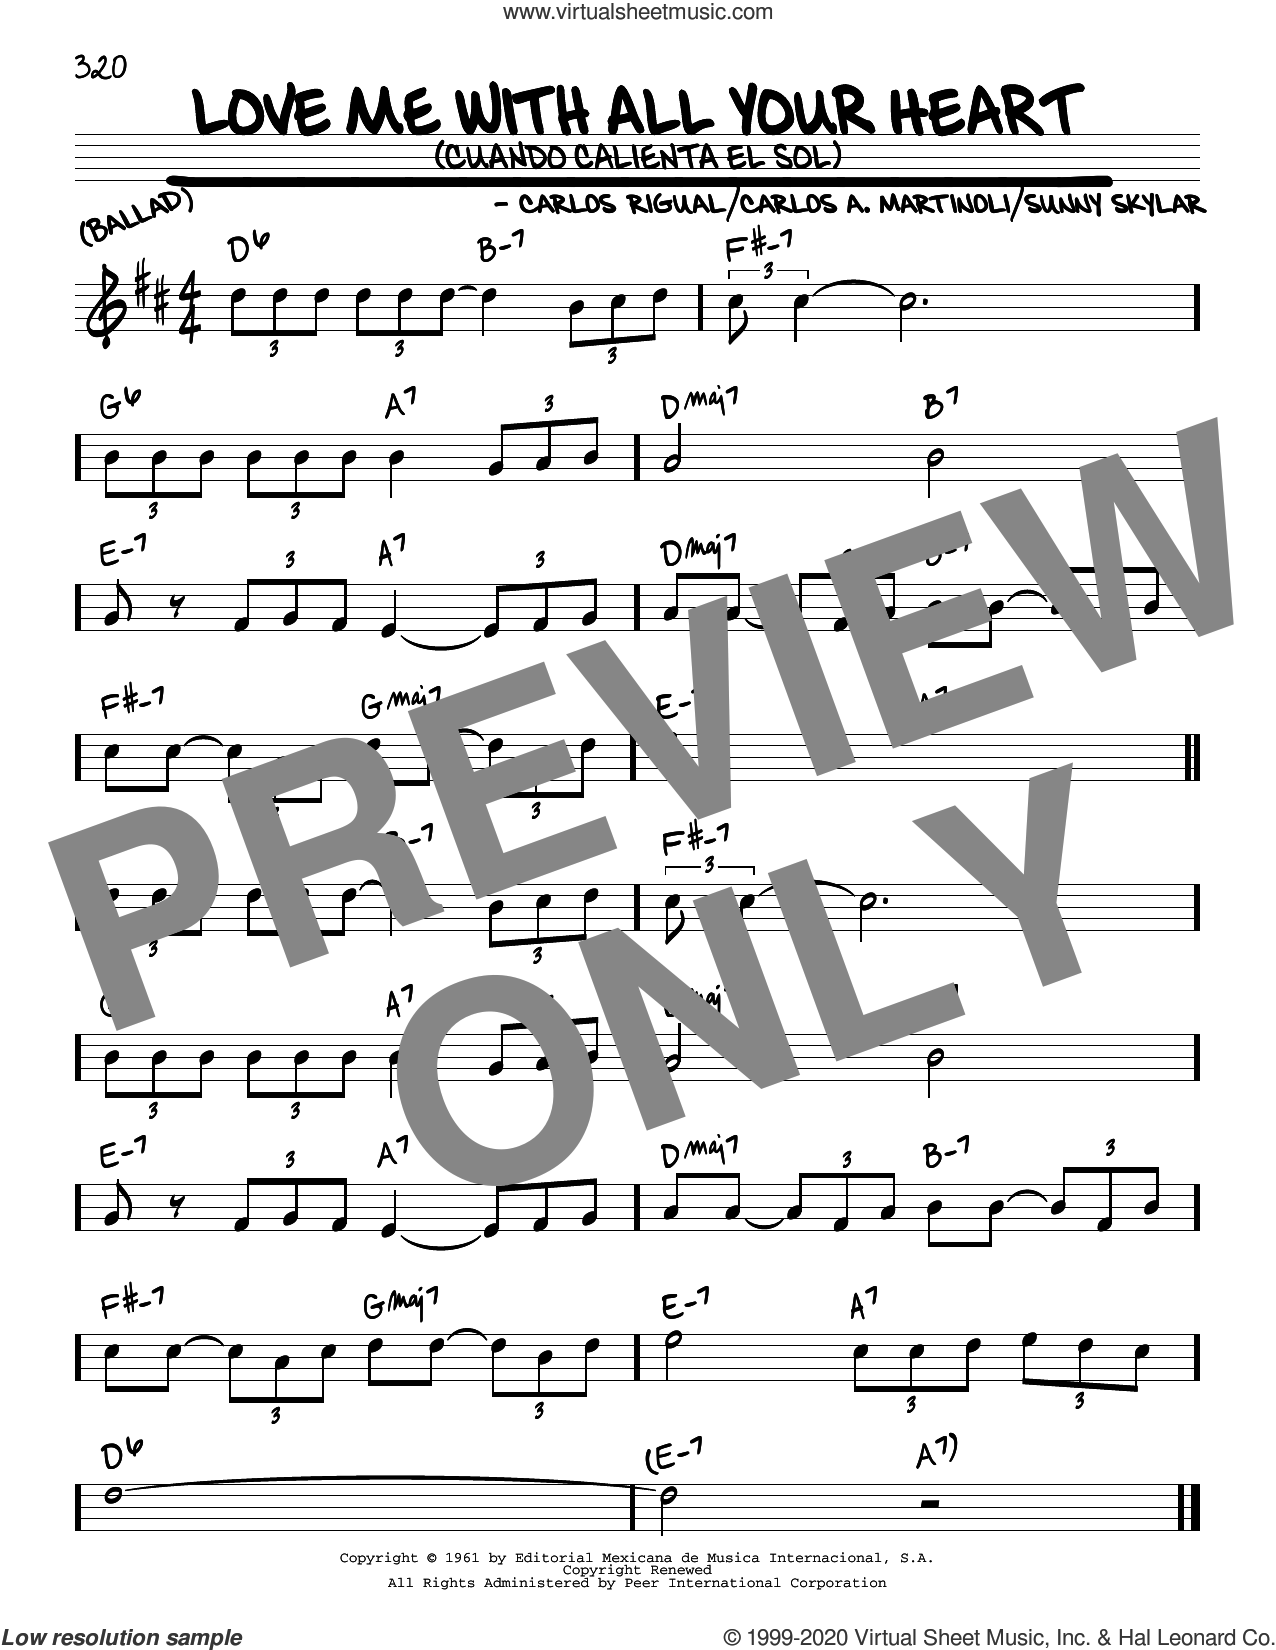 Love Me With All Your Heart (Cuando Calienta El Sol) sheet music for voice and other instruments (real book) by The Ray Charles Singers, Carlos A. Martinoli, Carlos Rigual and Sunny Skylar, intermediate skill level